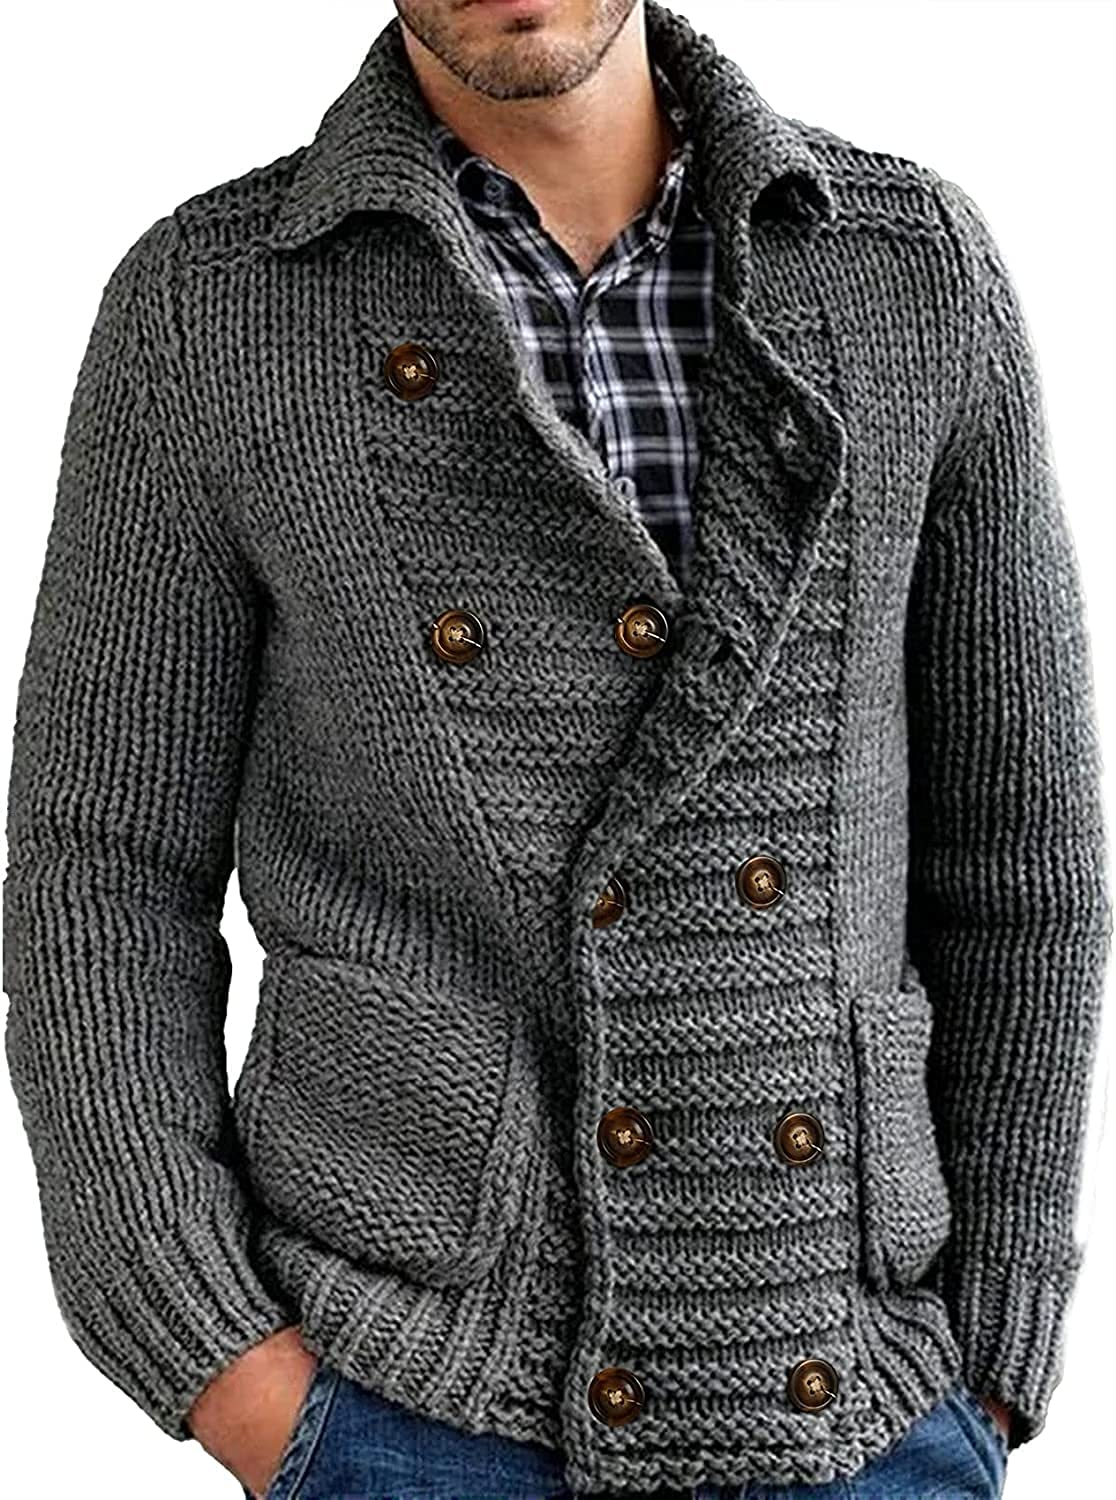 Mens Cable Knit Cardigan Sweater Stand Collar Button Down Loose Fit Long Sleeve Warm Casual Cardigans with Pockets